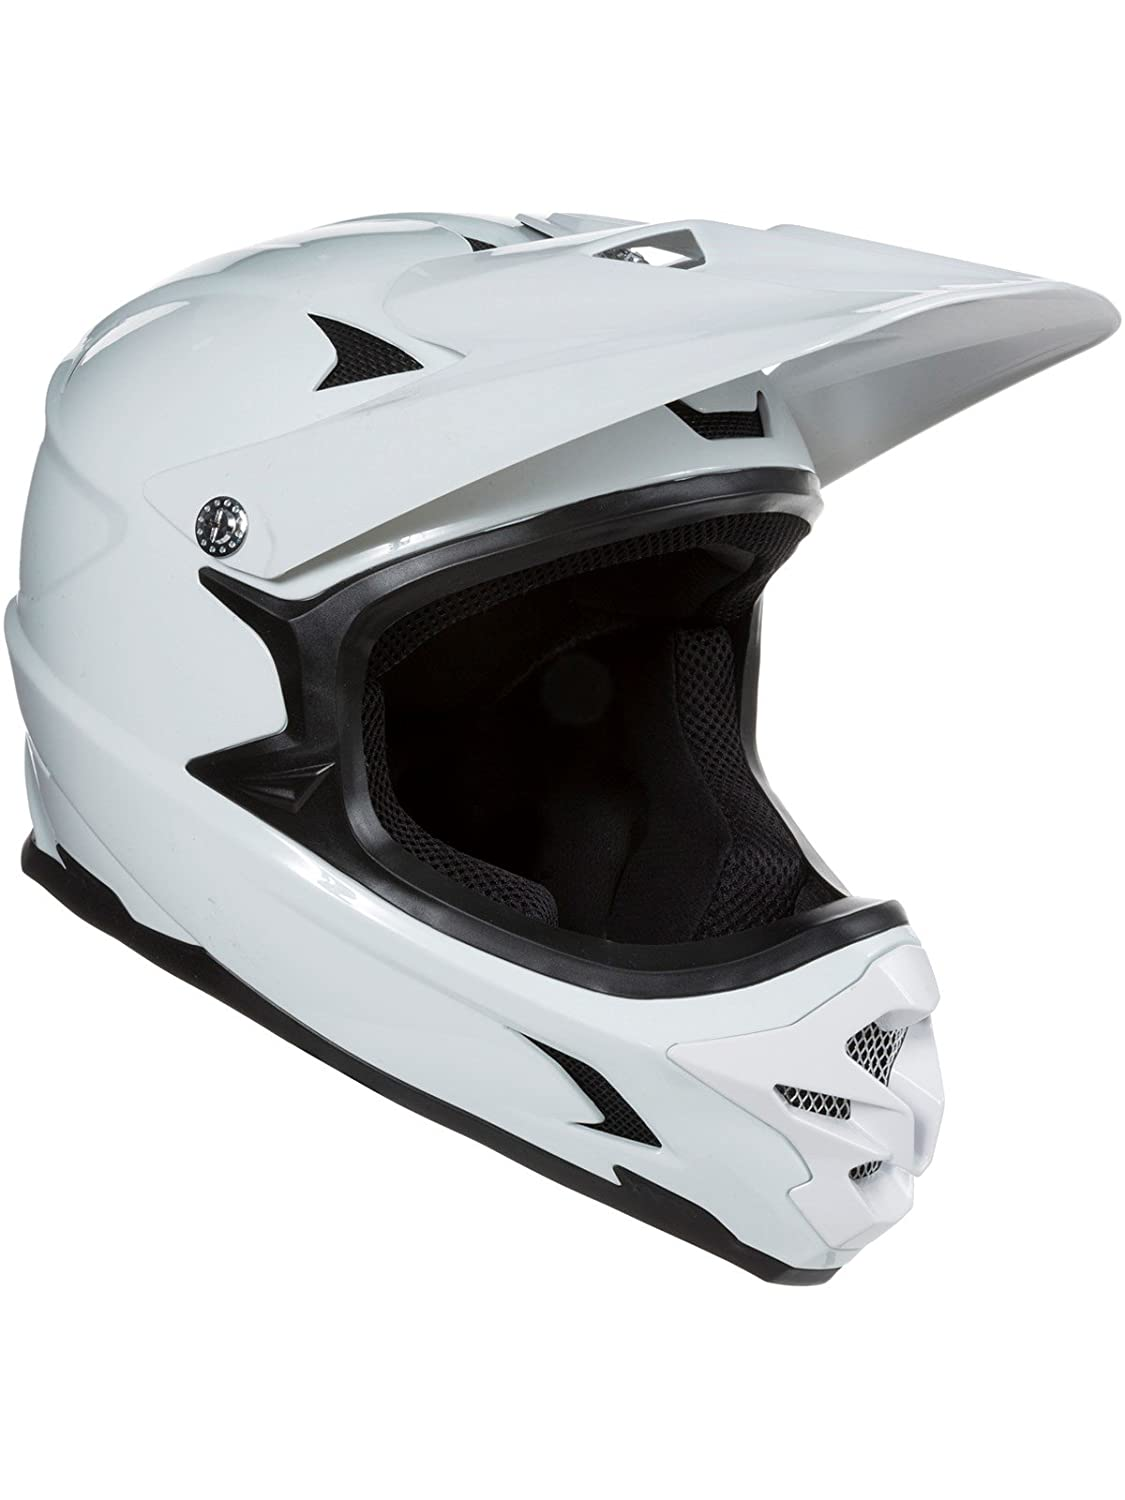 Lazer weiß Phoenix Plus MTB Full Face Helm